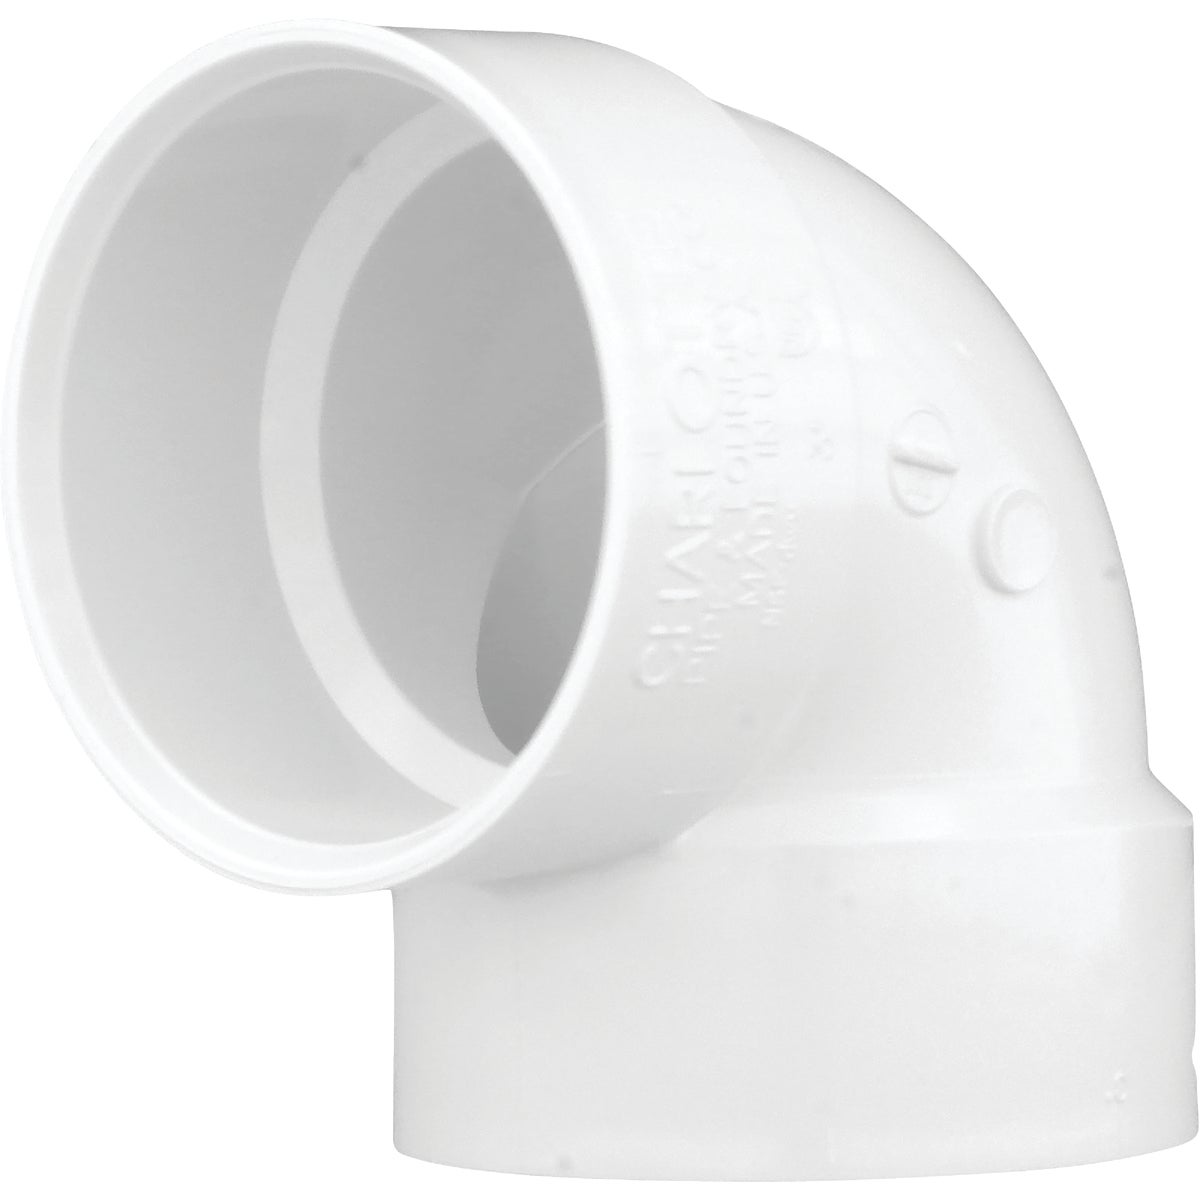 "3"" 90 PVC-DWV VENT ELBOW - 70730 by Genova Inc  Pvc Dwv"